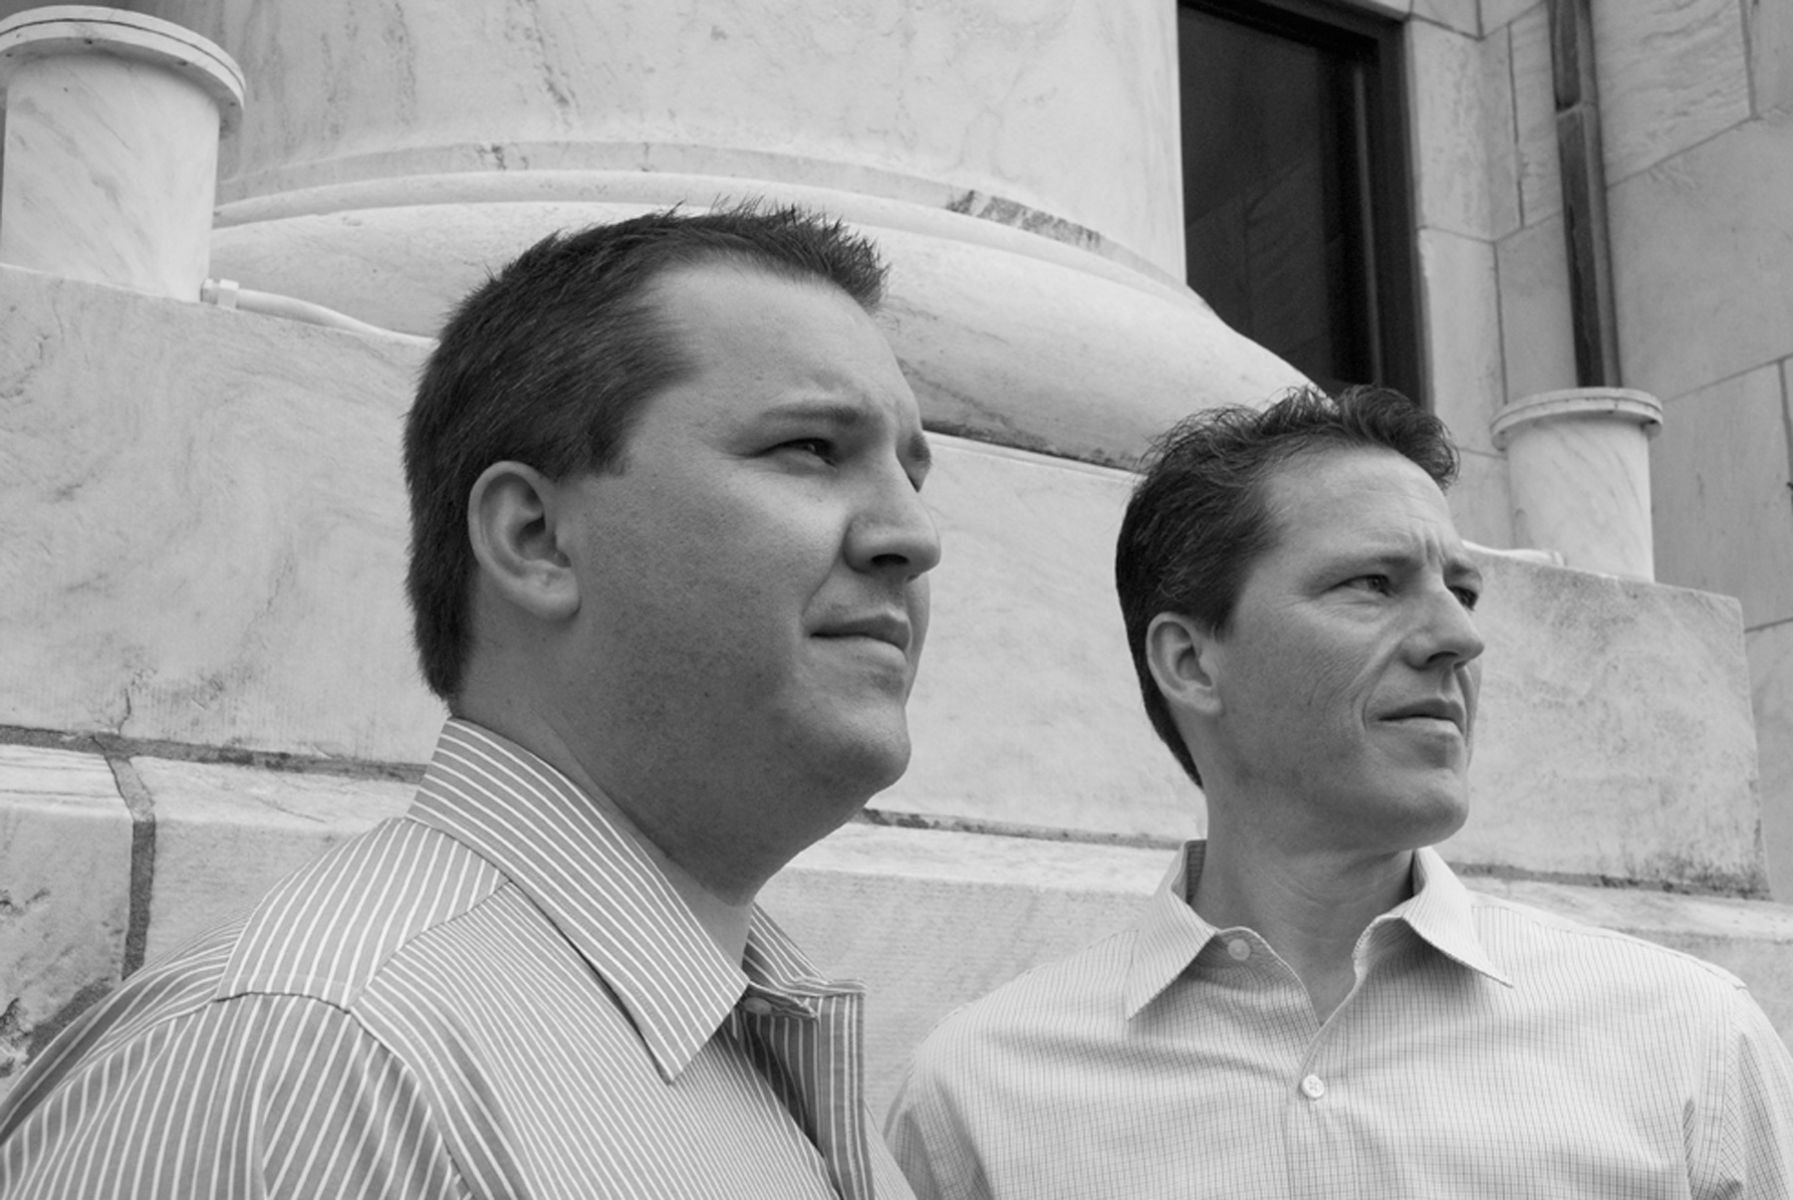 1corporateportraits_rob_tednewland56_bw